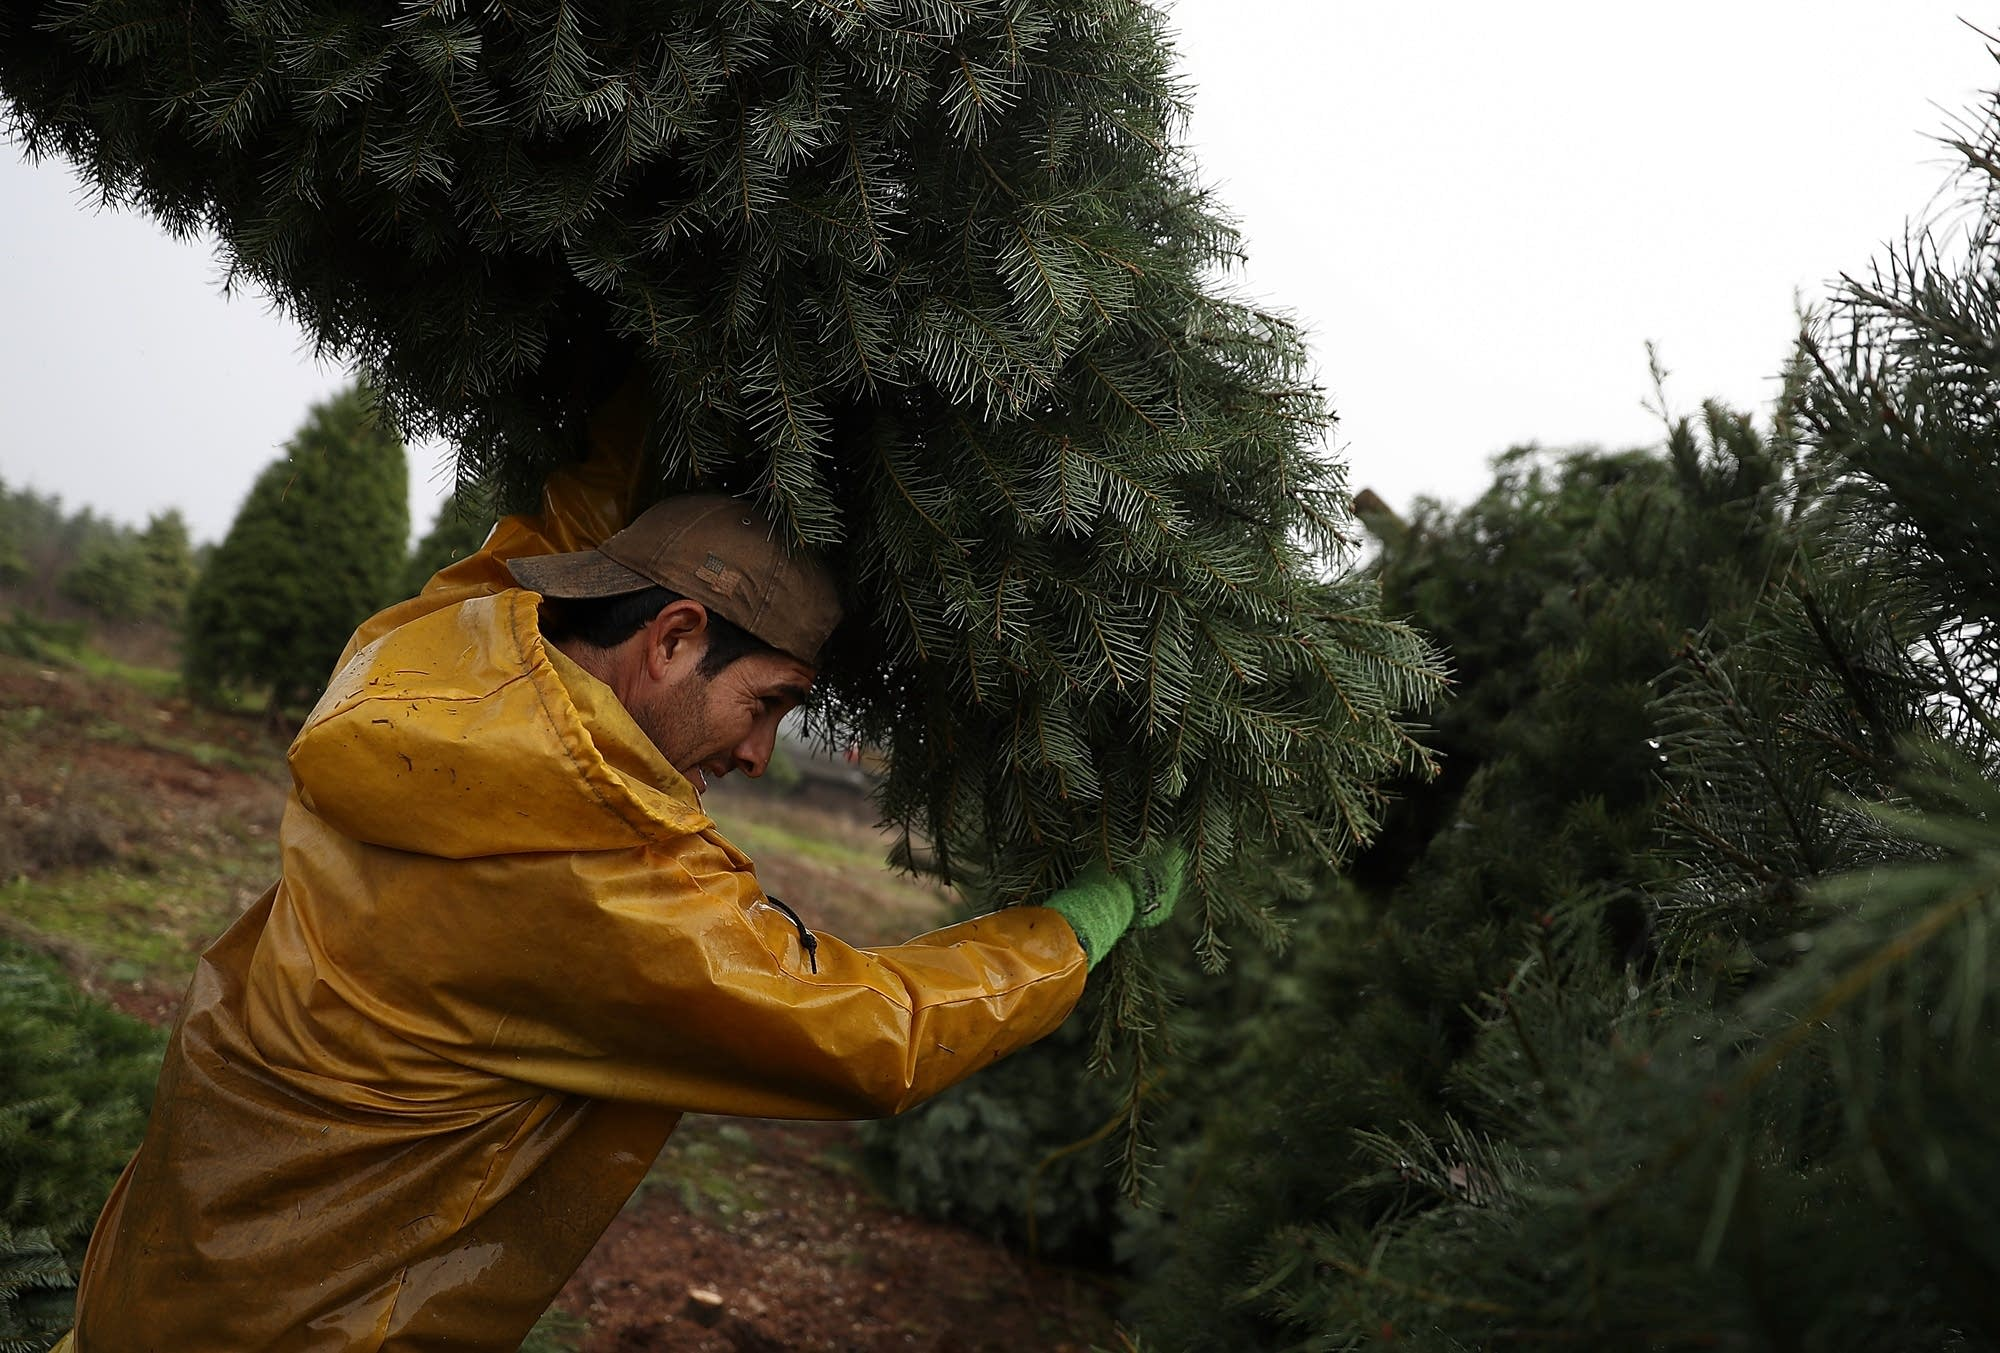 Oregon Christmas tree farm harvests trees